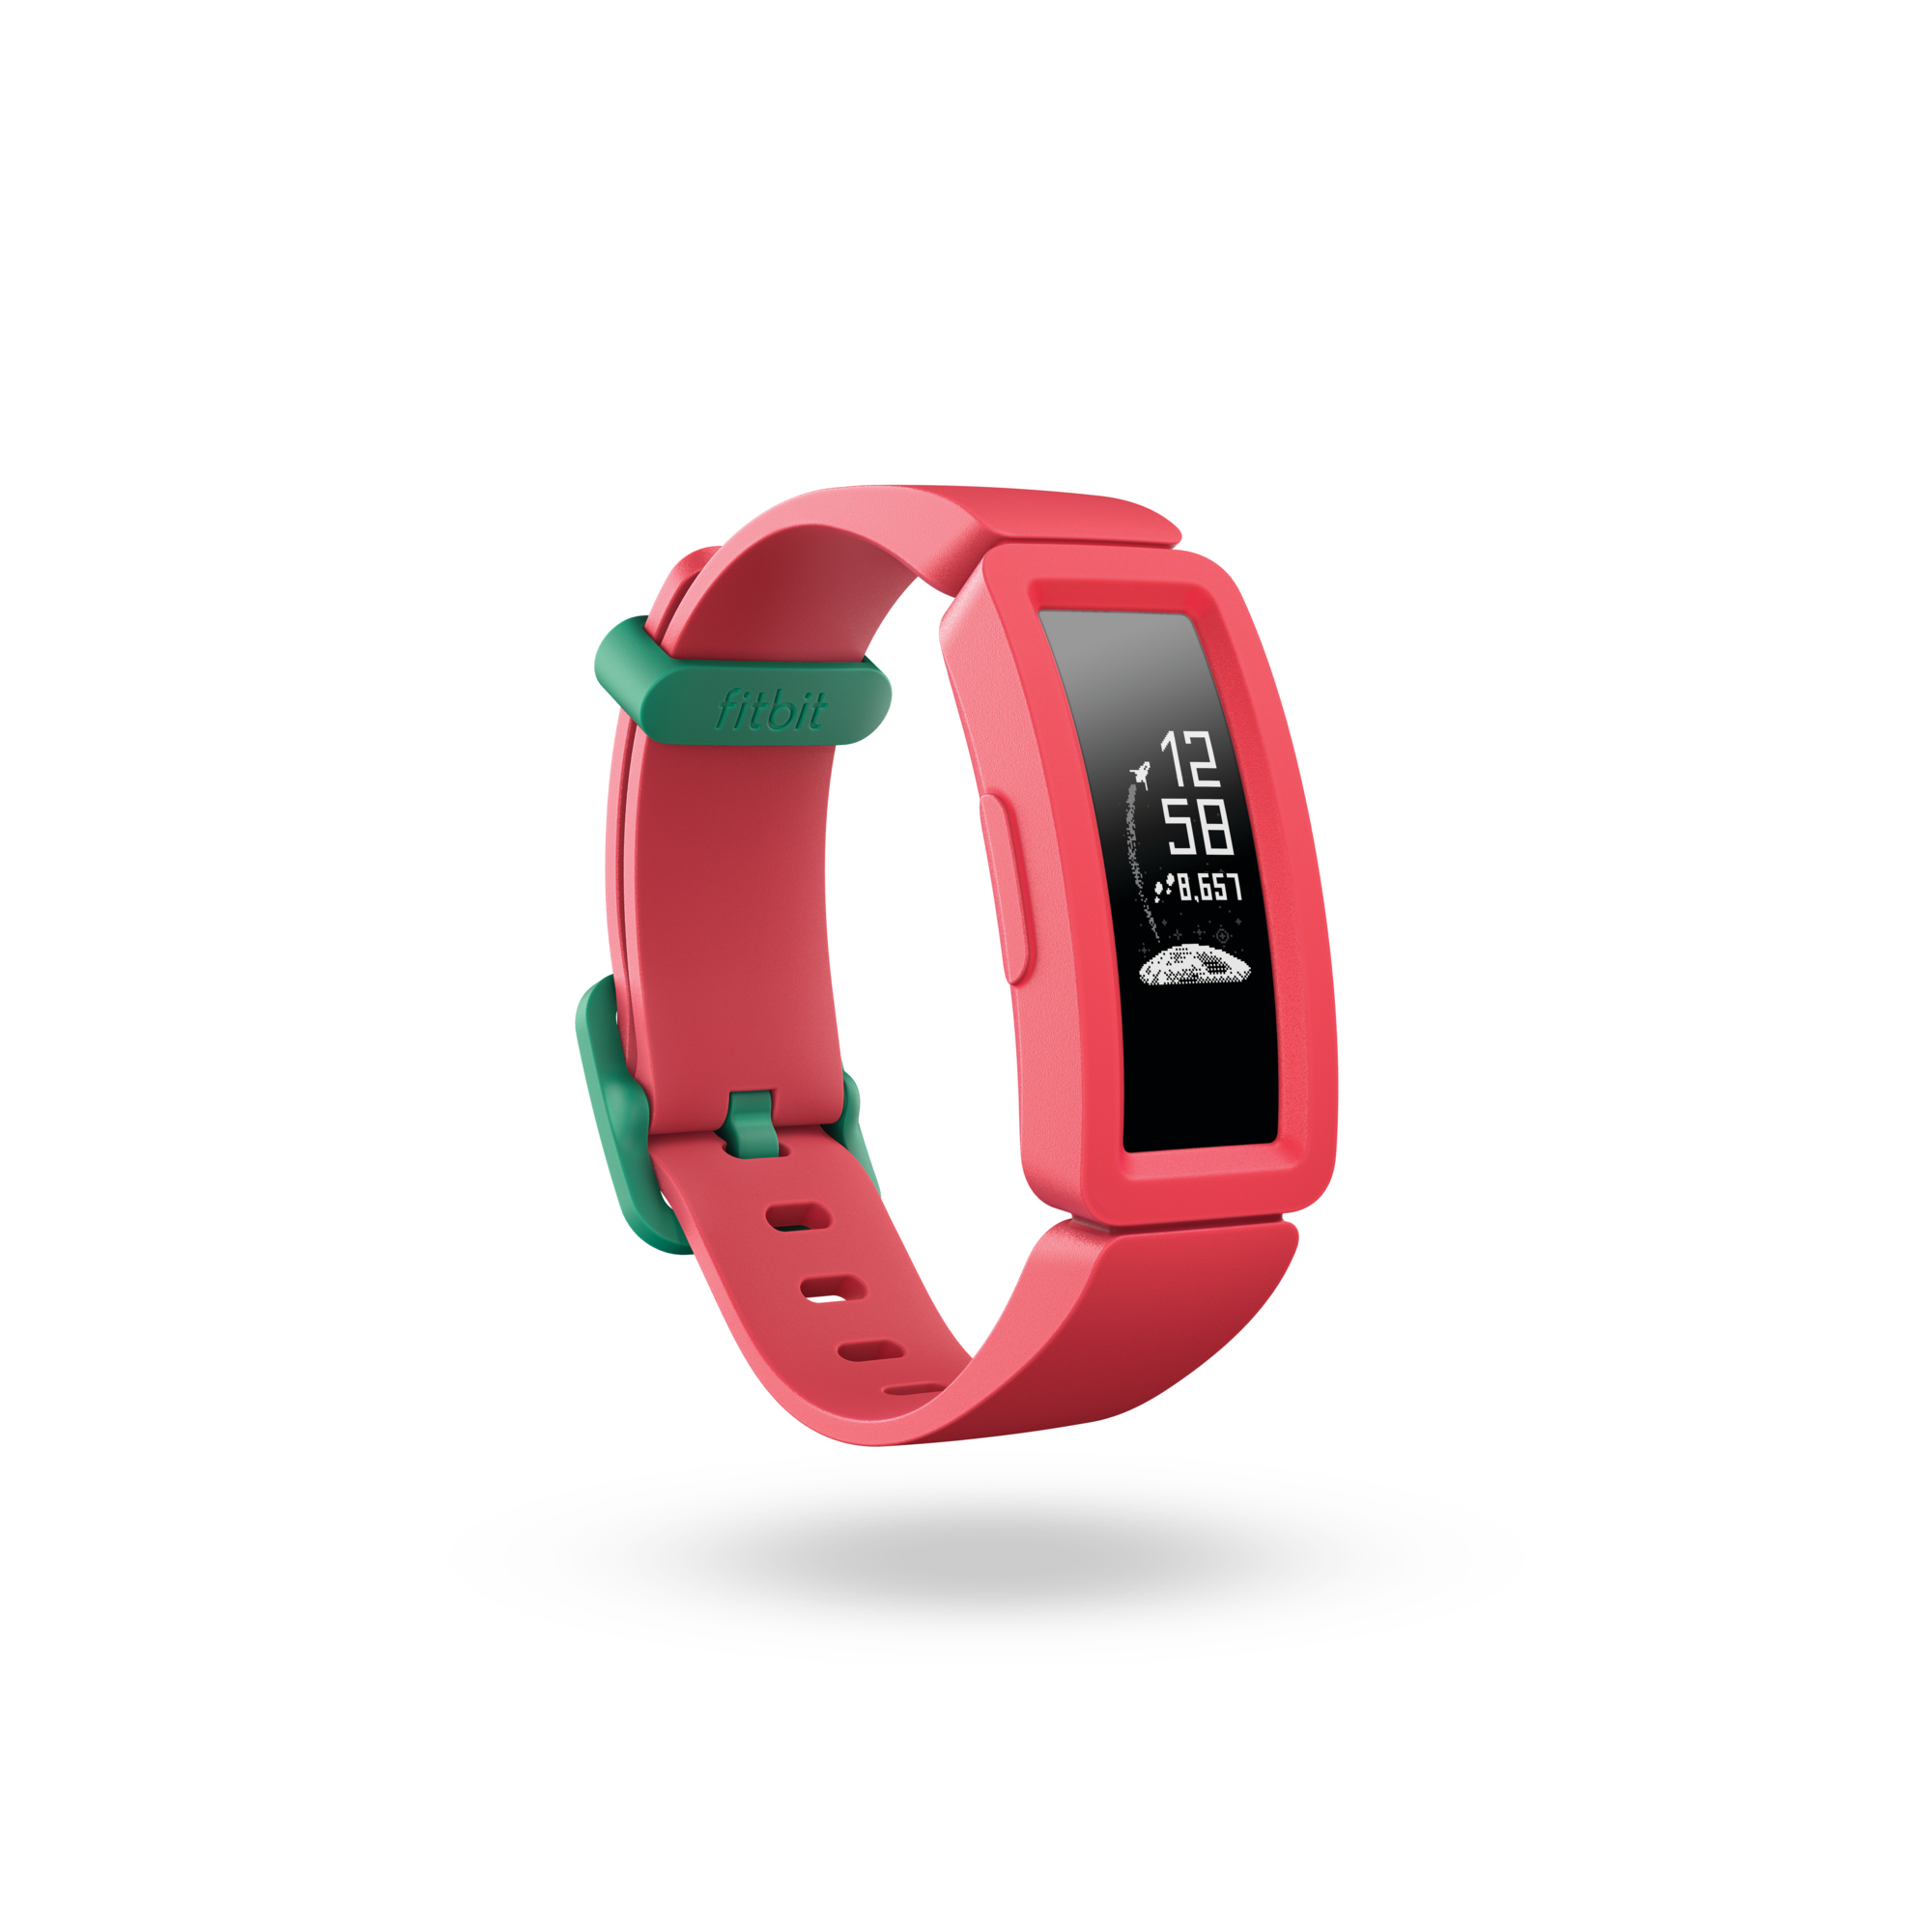 Product render of Fitbit Ace 2, 3QTR view, in Watermelon and Teal